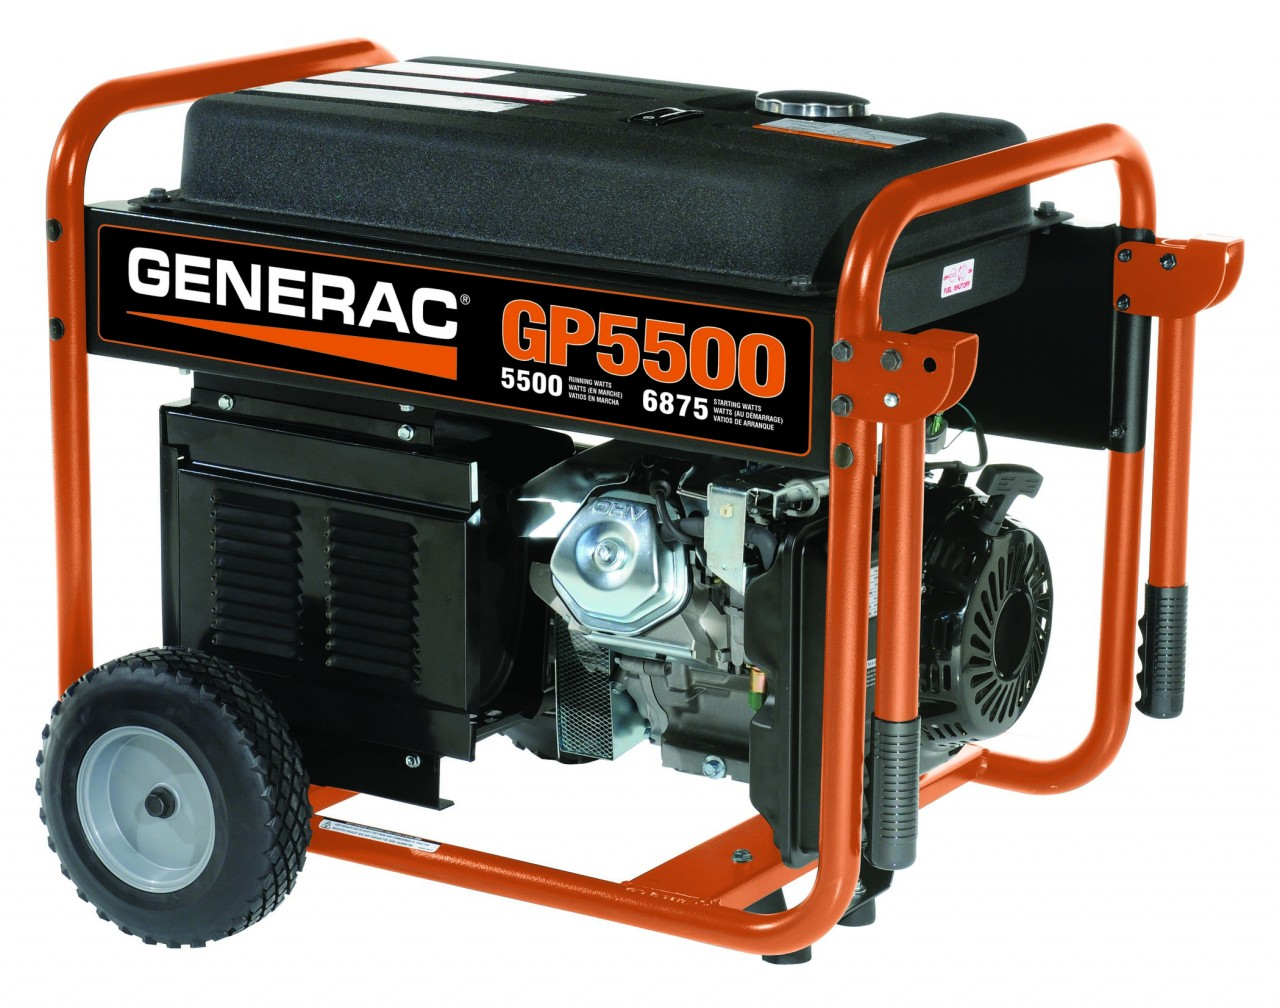 Generators Generac Generator Wiring Diagram Electrical on generac guardian wiring-diagram, generac parts repair parts modle 01042 1, generac transfer switch diagram, generac gp6500 electrical diagram, generac nexus controller wiring diagram,